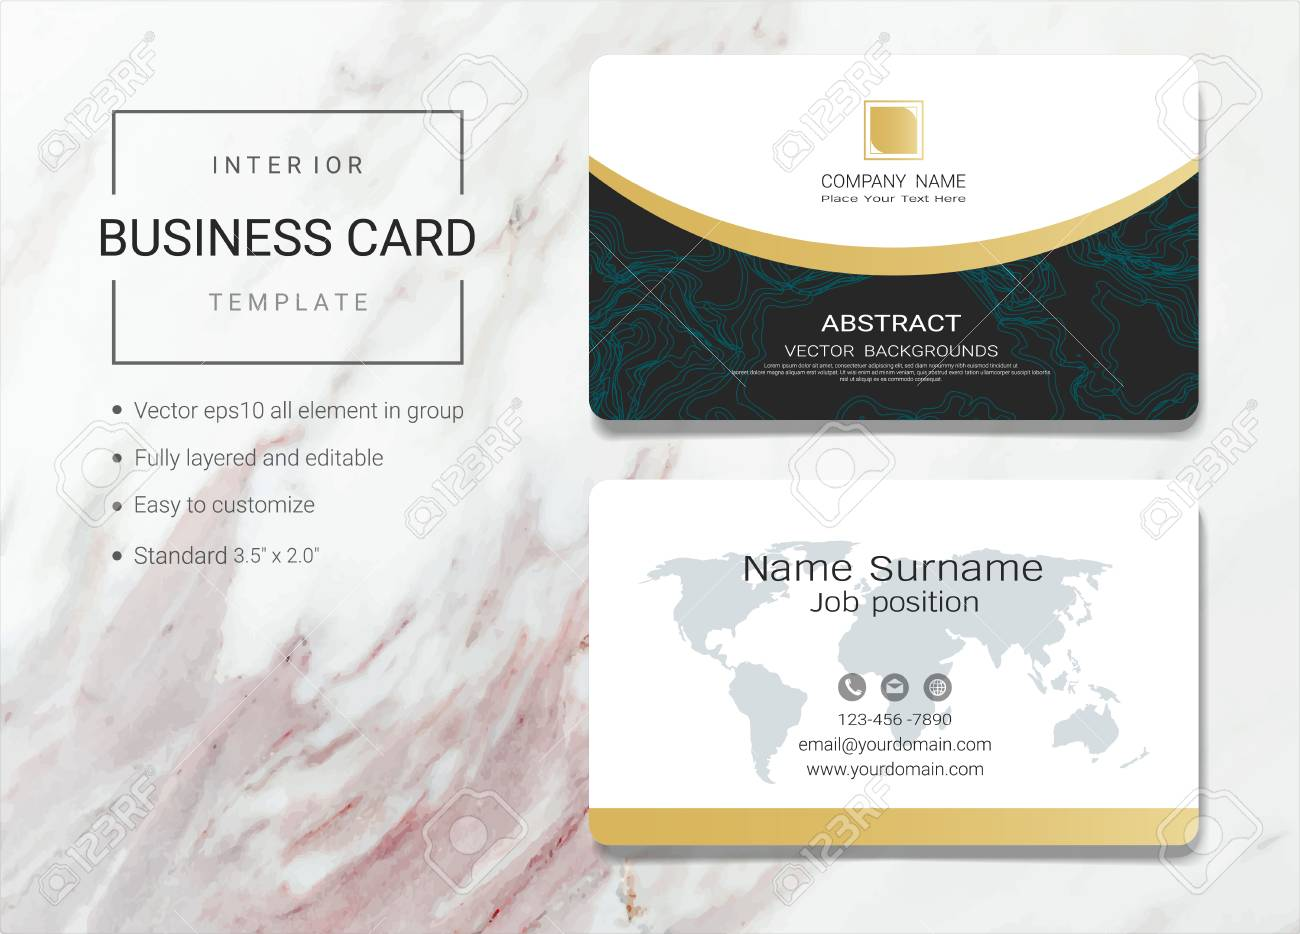 Interior business card or name card template simple style also interior business card or name card template simple style also modern and elegant with marbling wajeb Choice Image